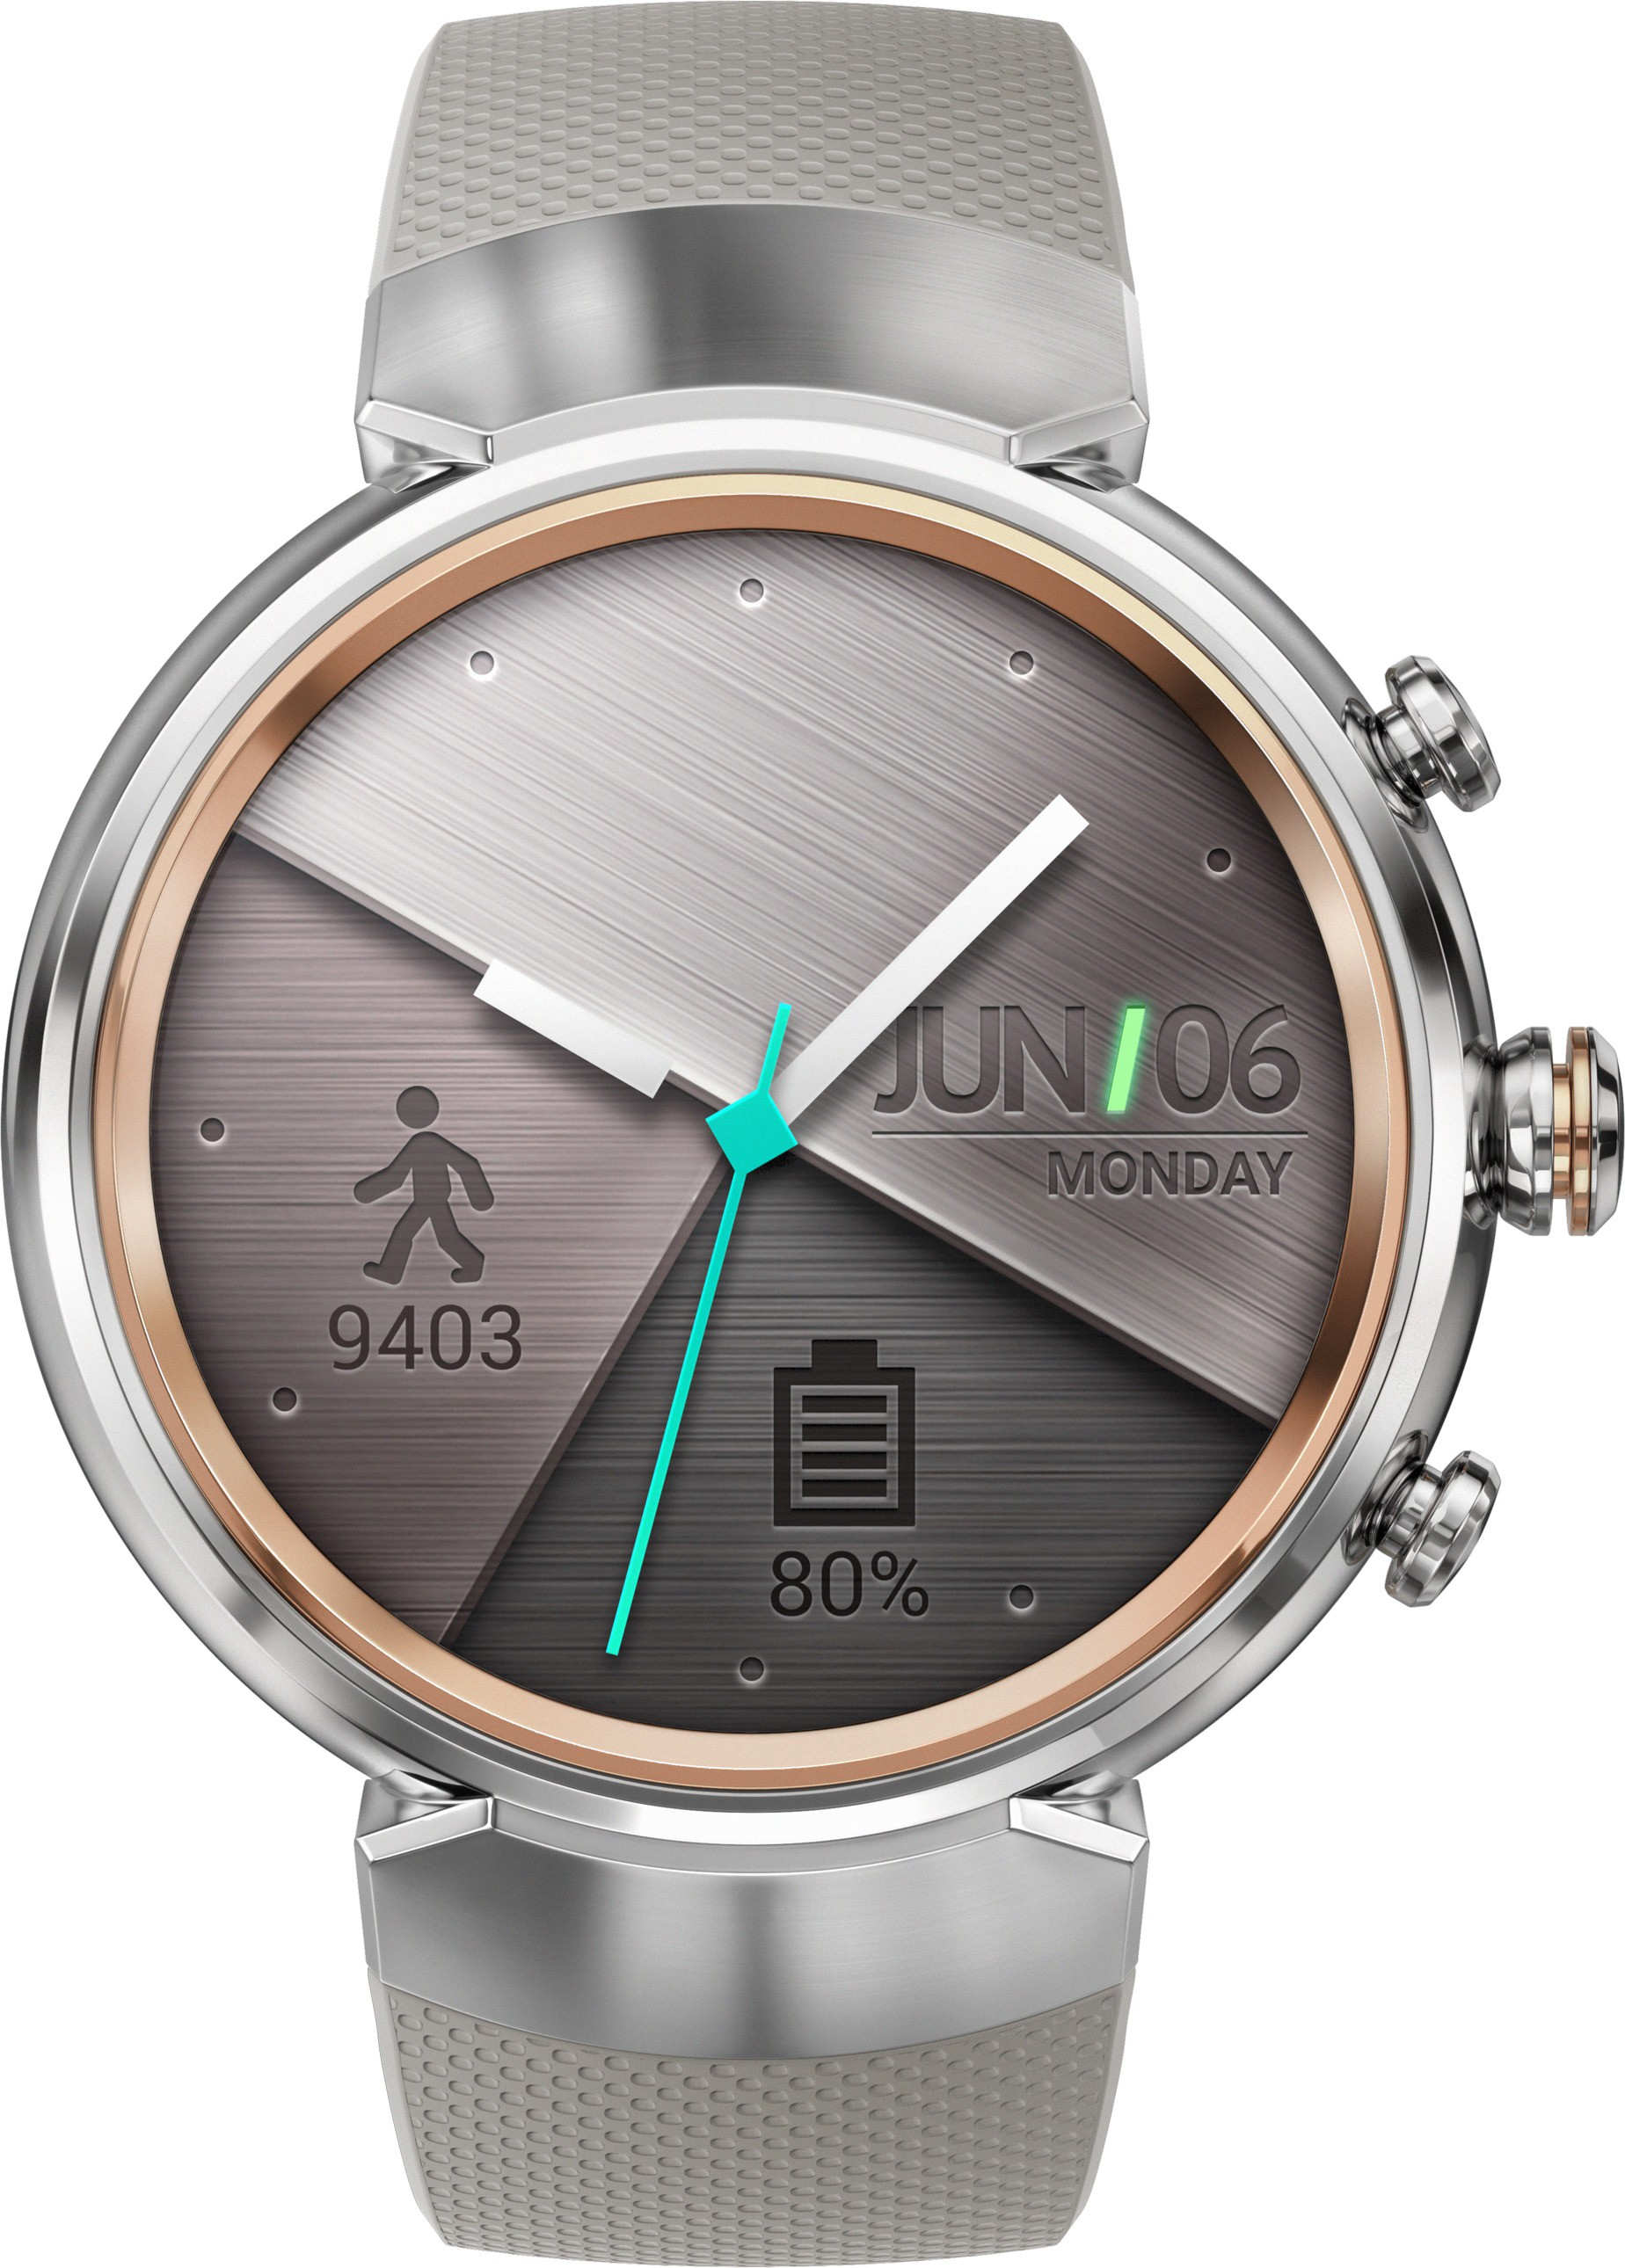 Deals - Delhi - Asus ZenWatch <br> Gen.2 & Gen.3 Watches<br> Category - wearable_smart_devices<br> Business - Flipkart.com